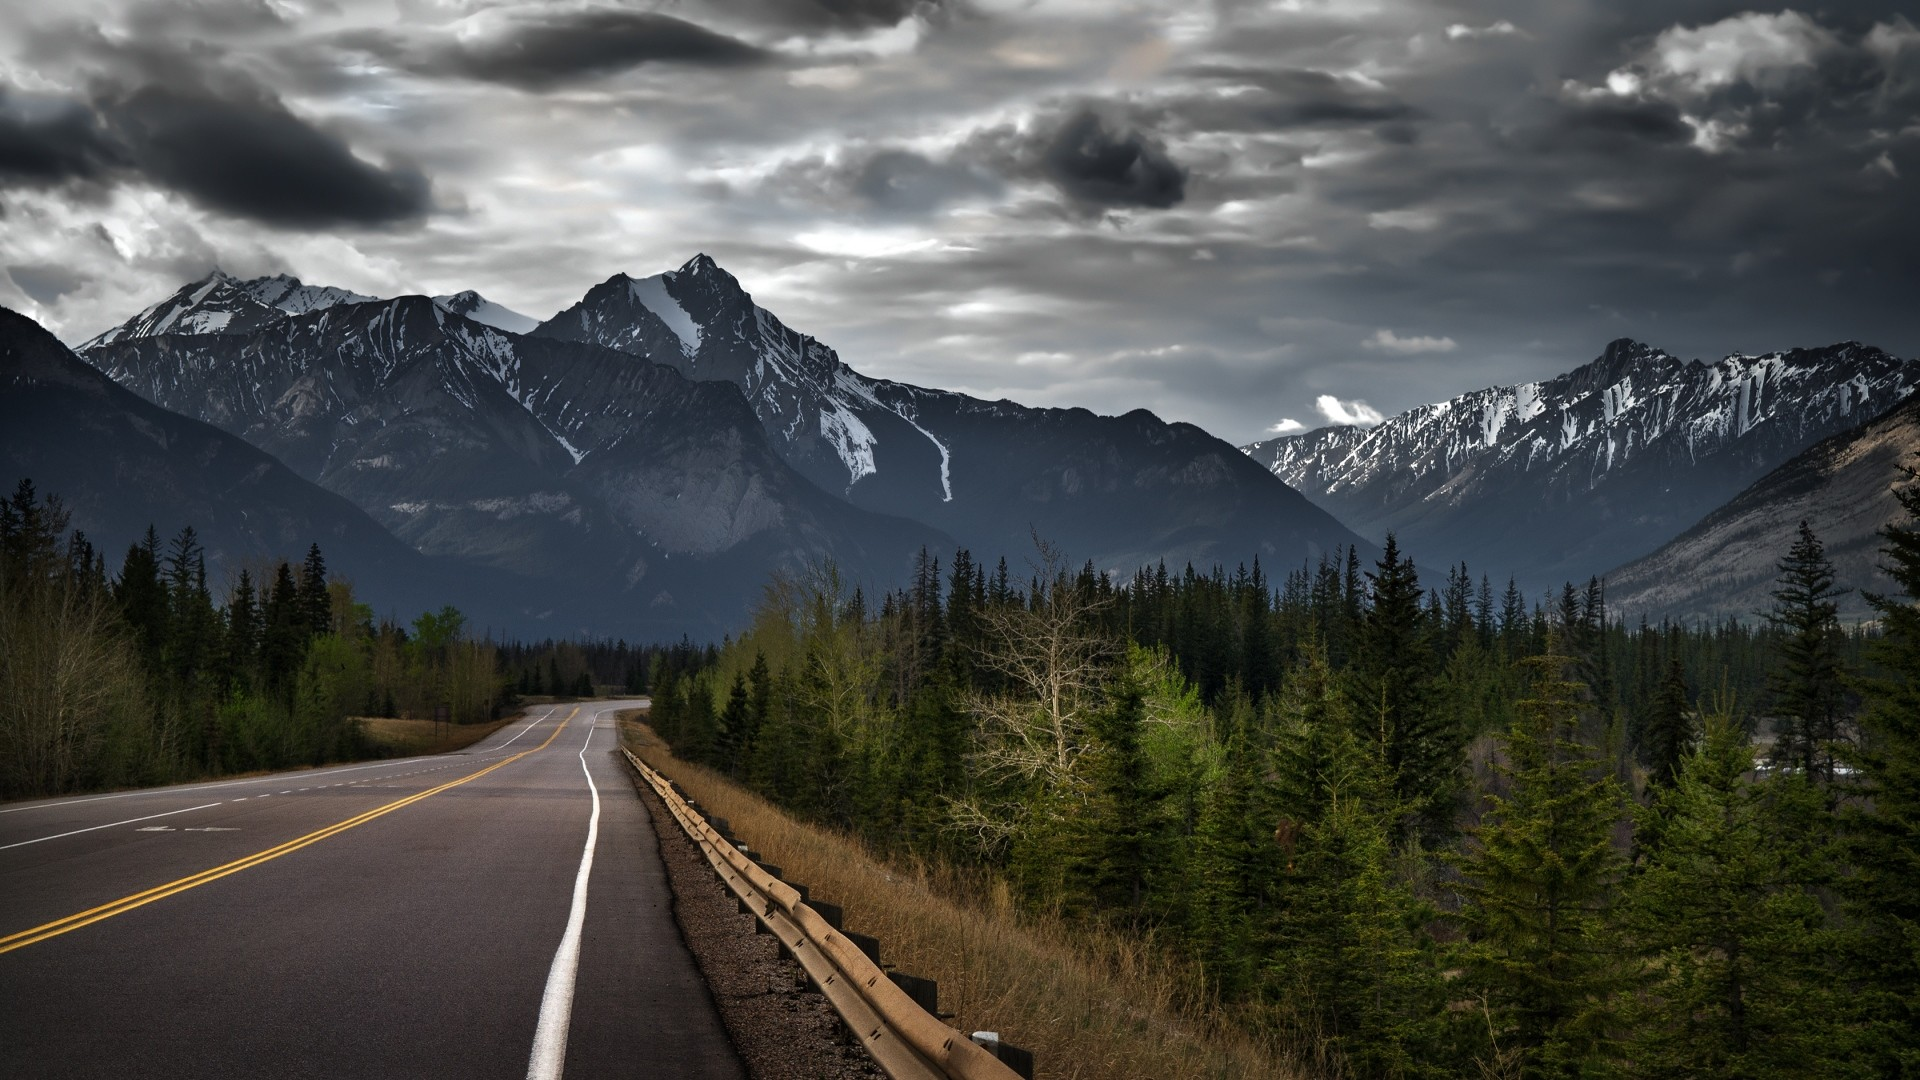 1920x1080 Canada Mountain Road Wallpaper 61832